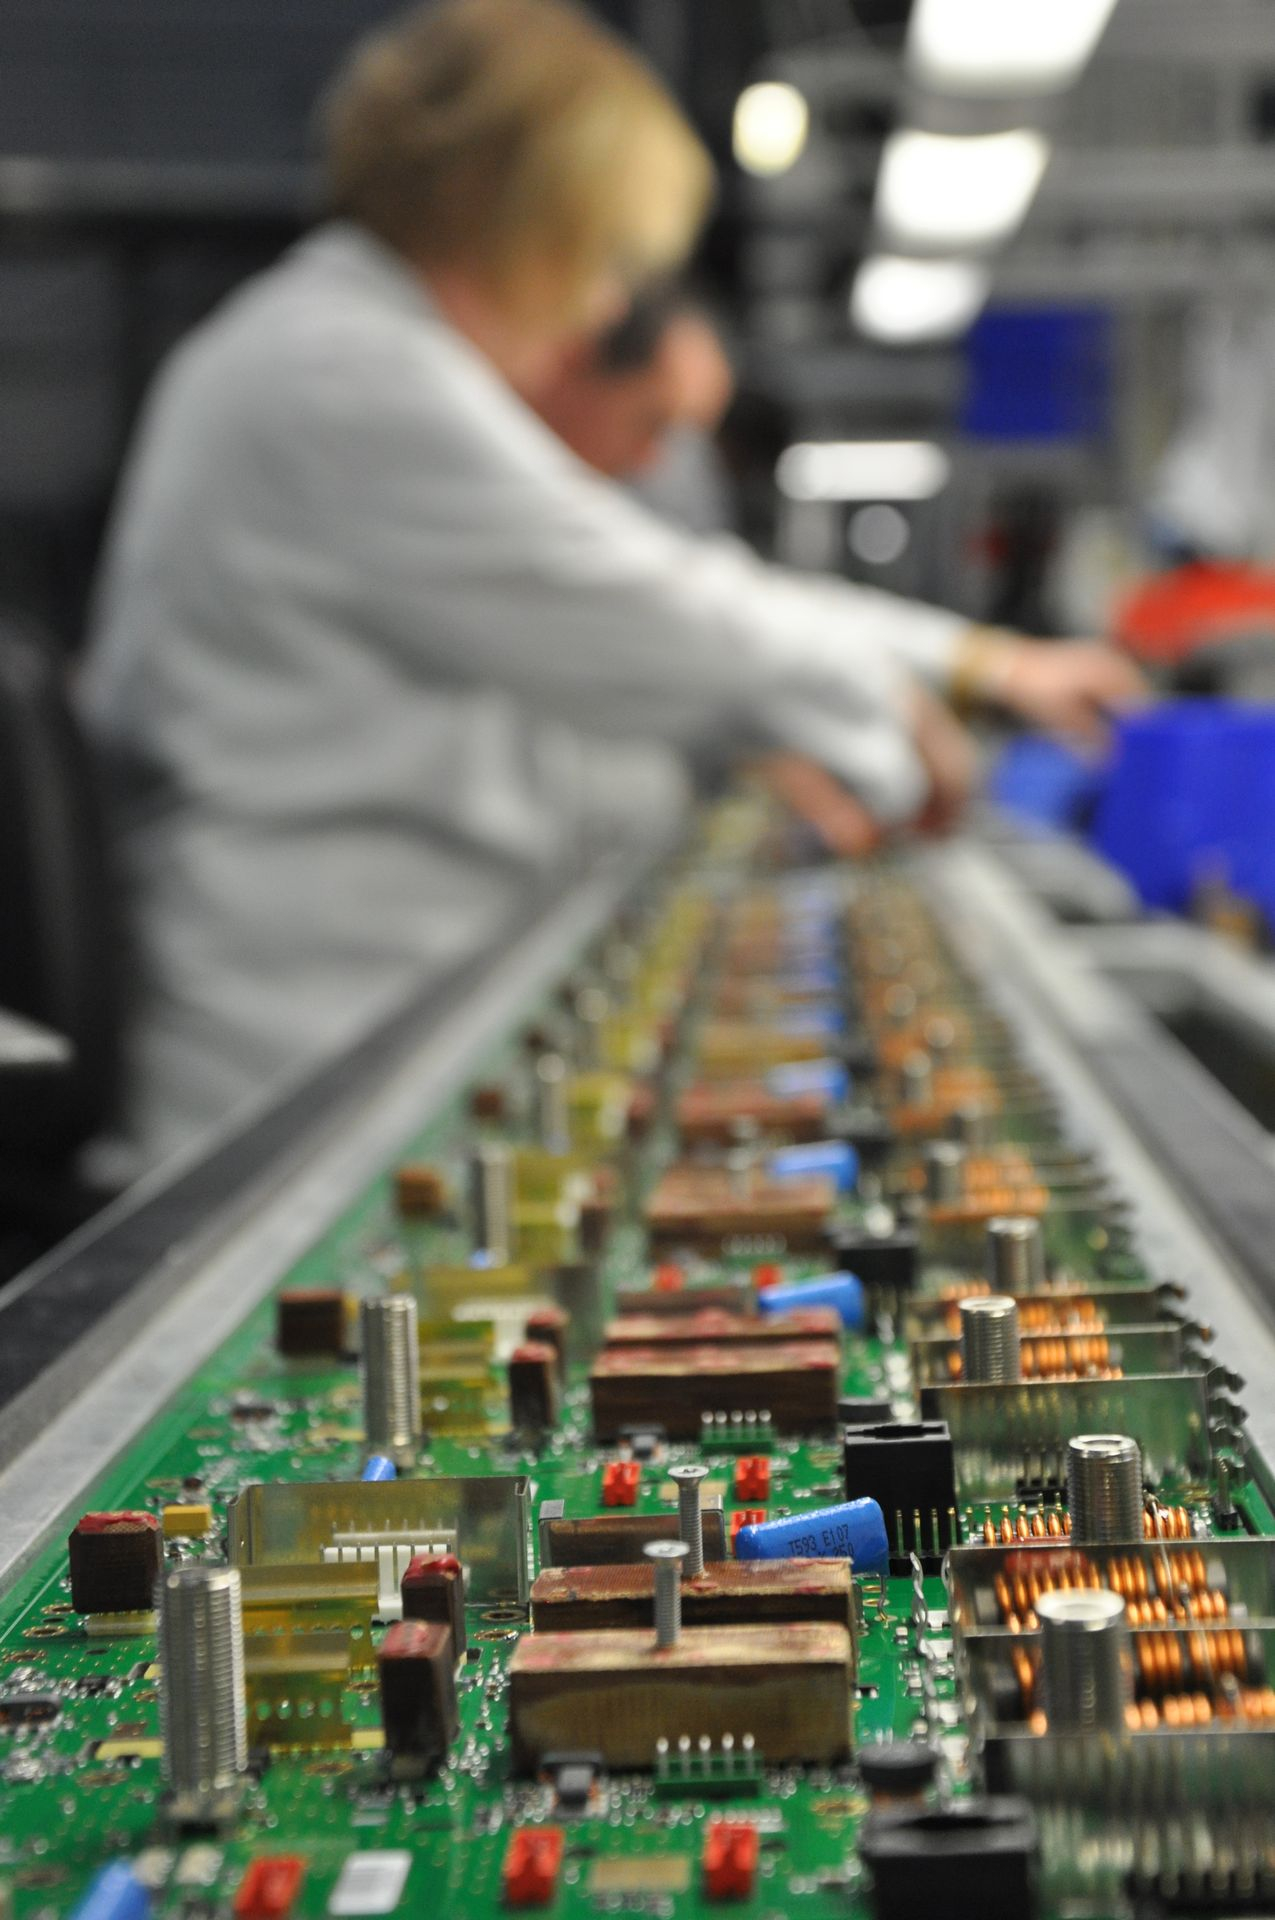 medium-volume-production-of-state-of-the-art-RF-node-in-vector-blue-hub-manufacturing-floor